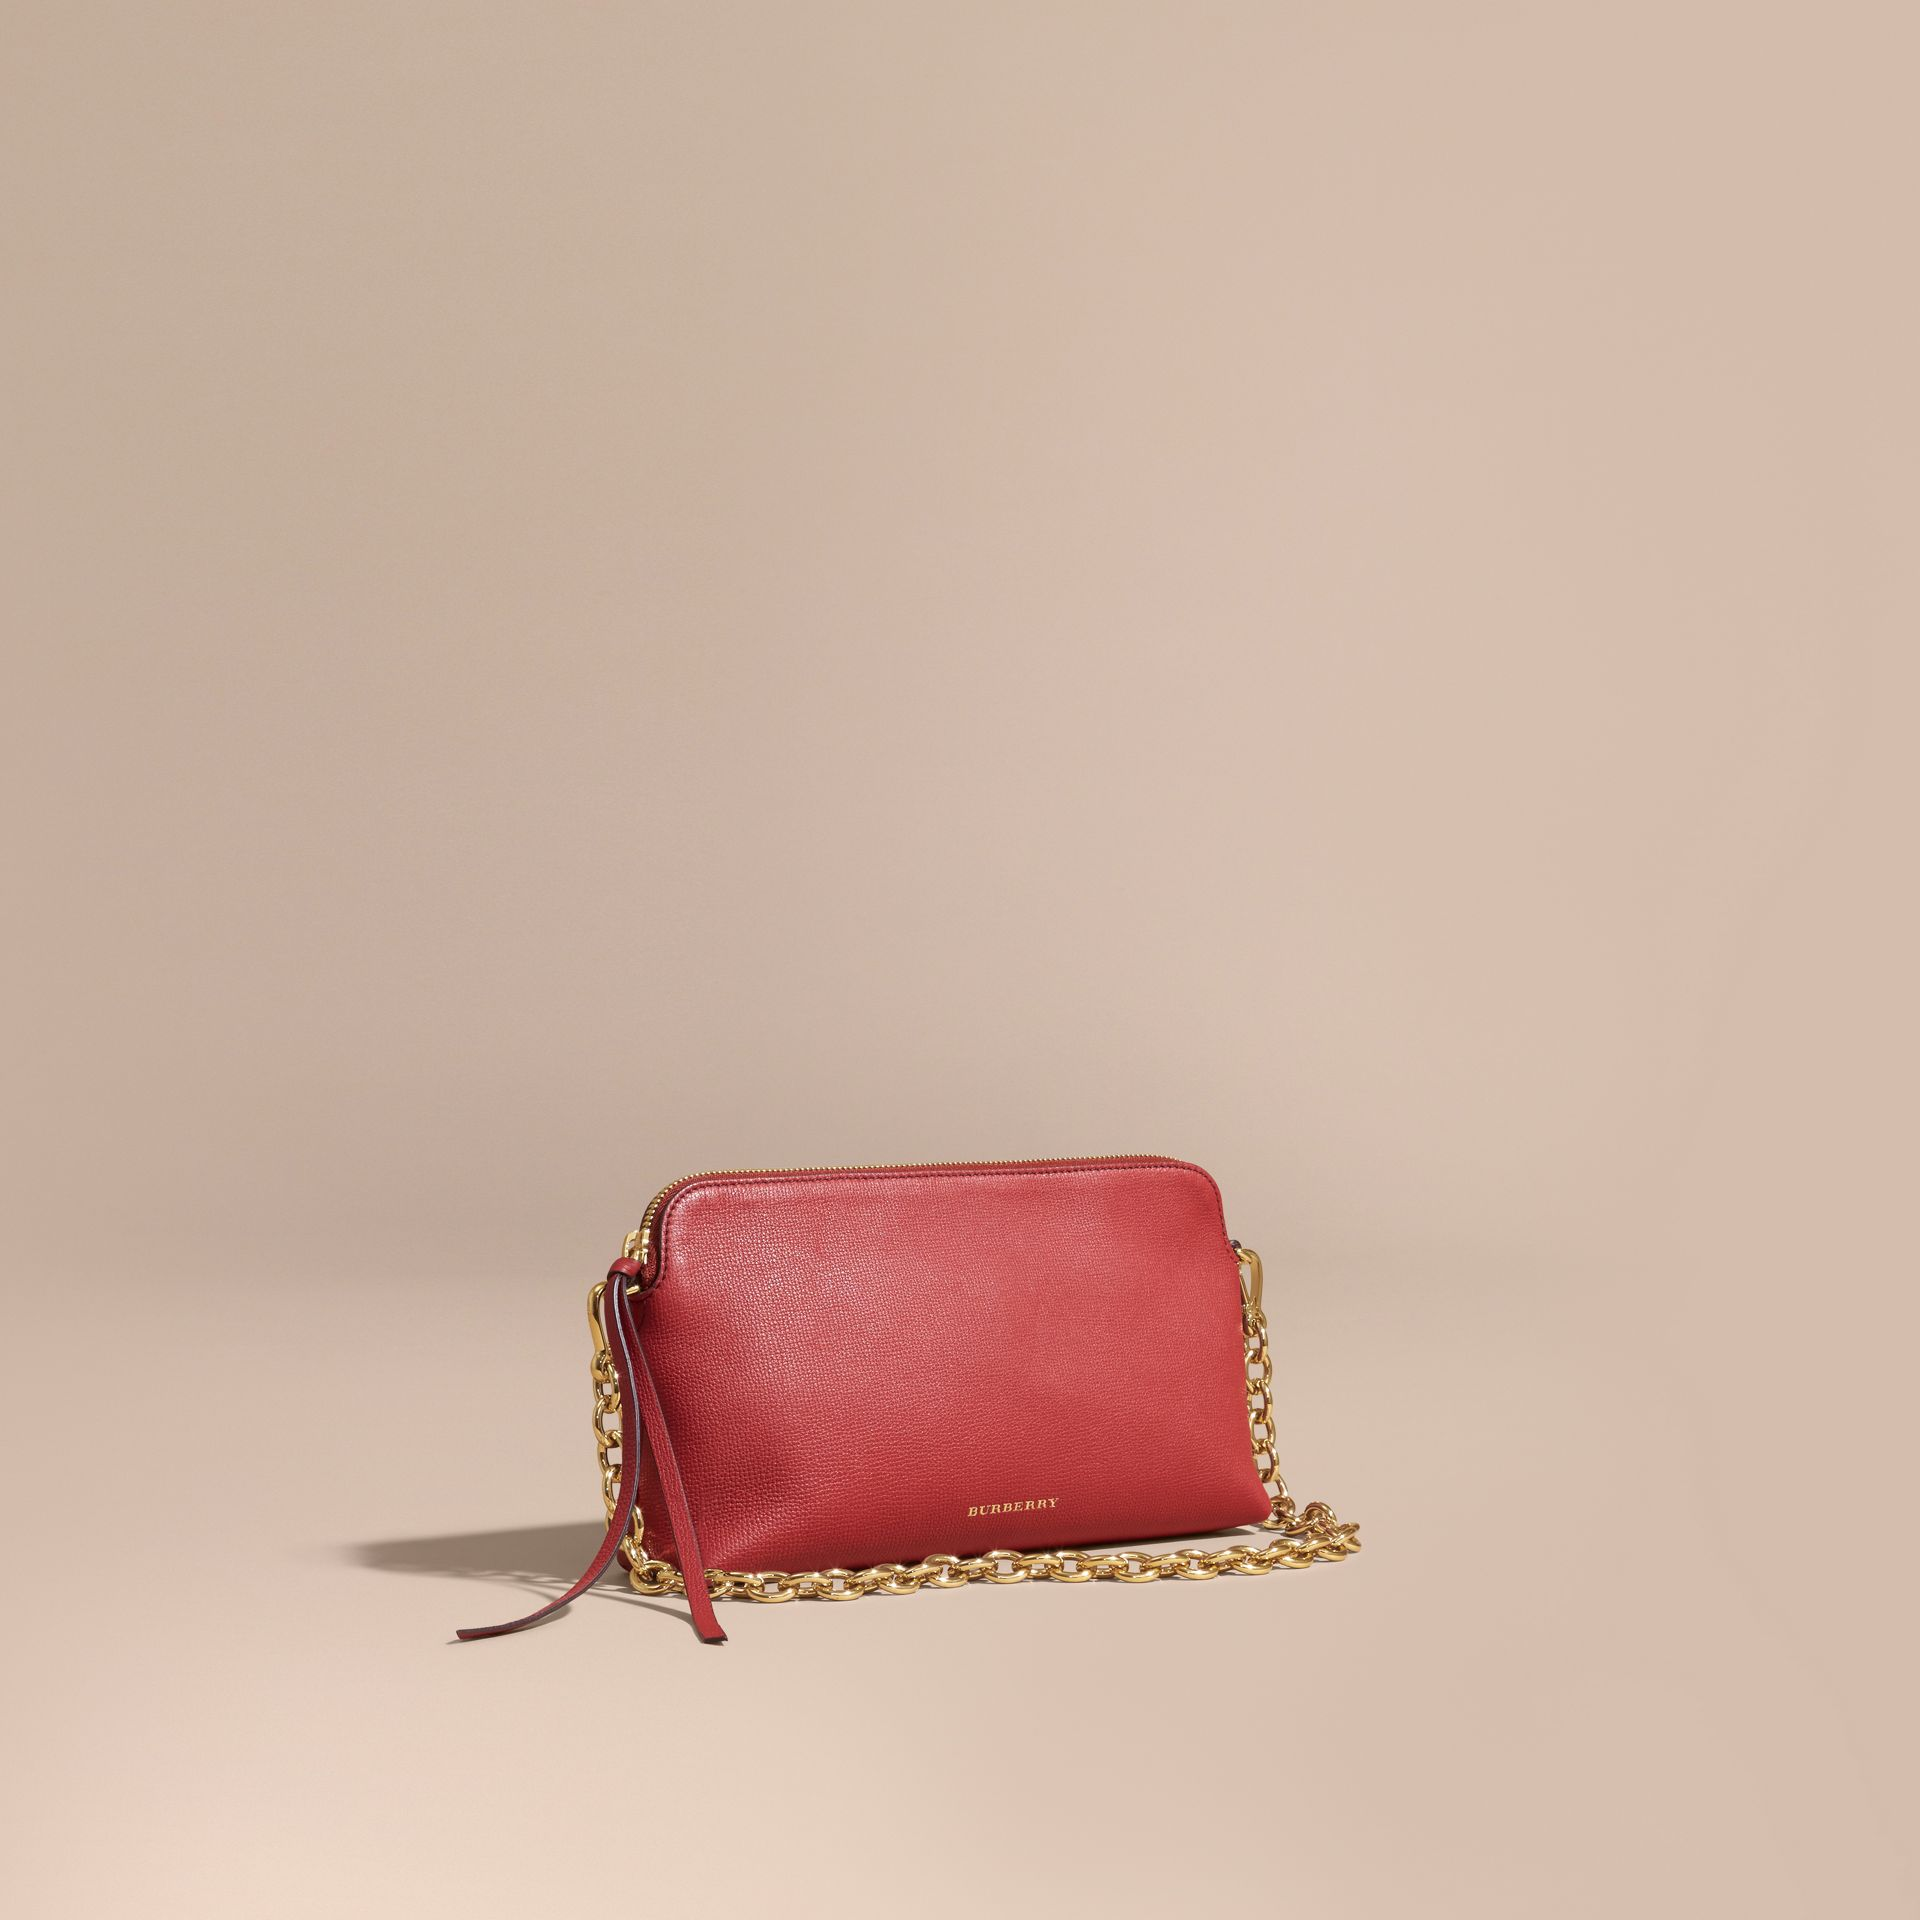 Grainy Leather Clutch Bag Russet Red - gallery image 1